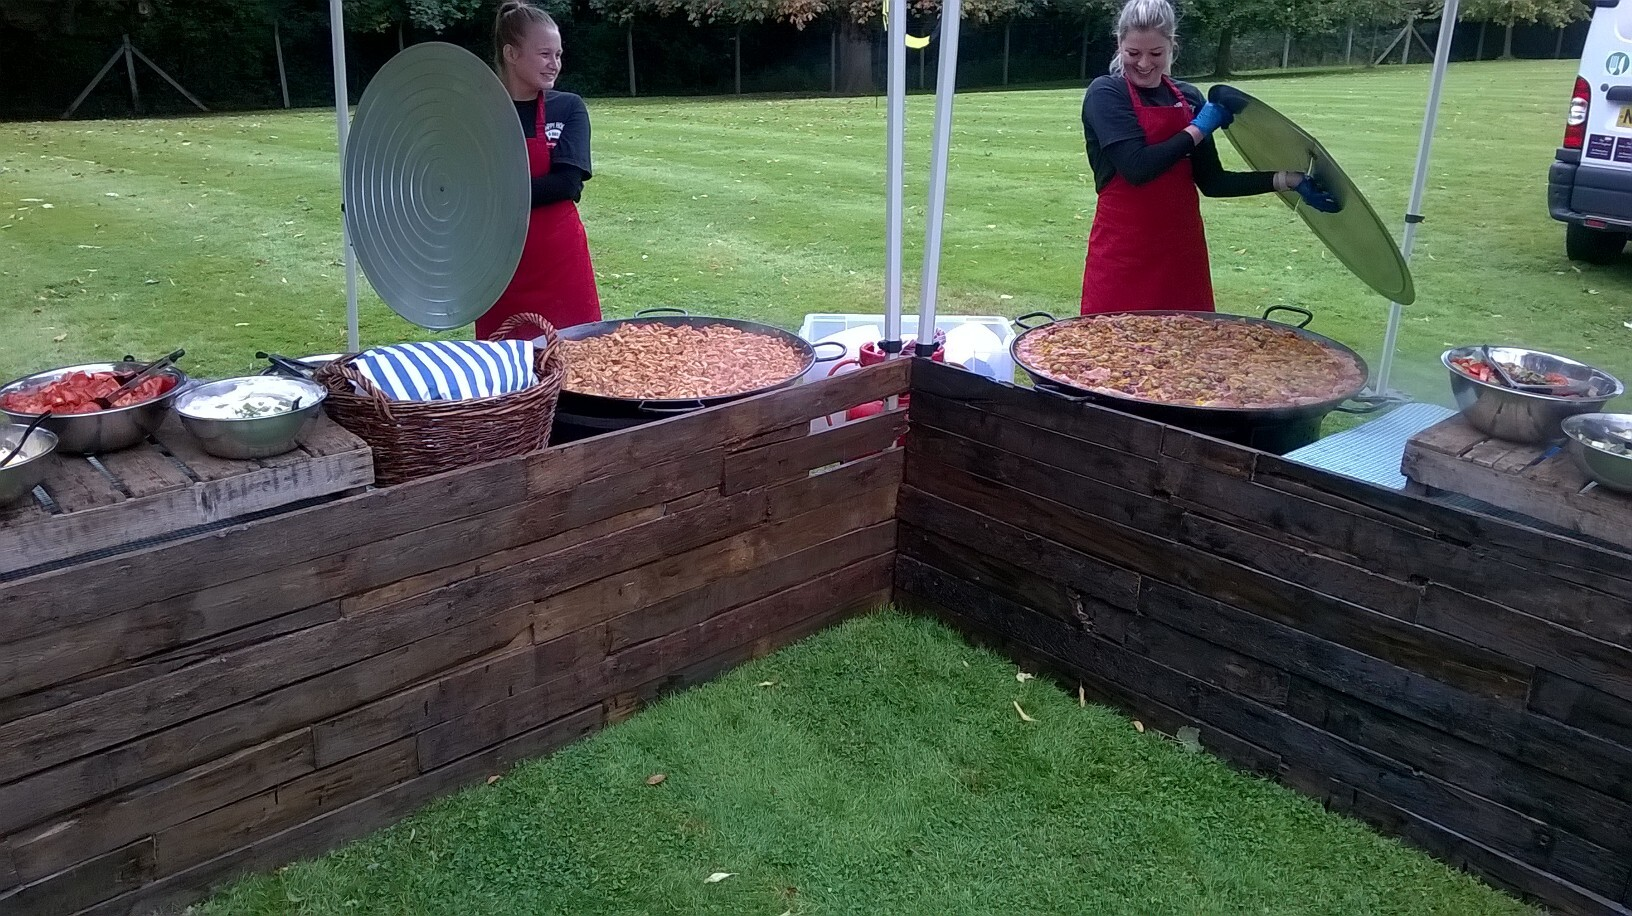 Paella Pan Catering